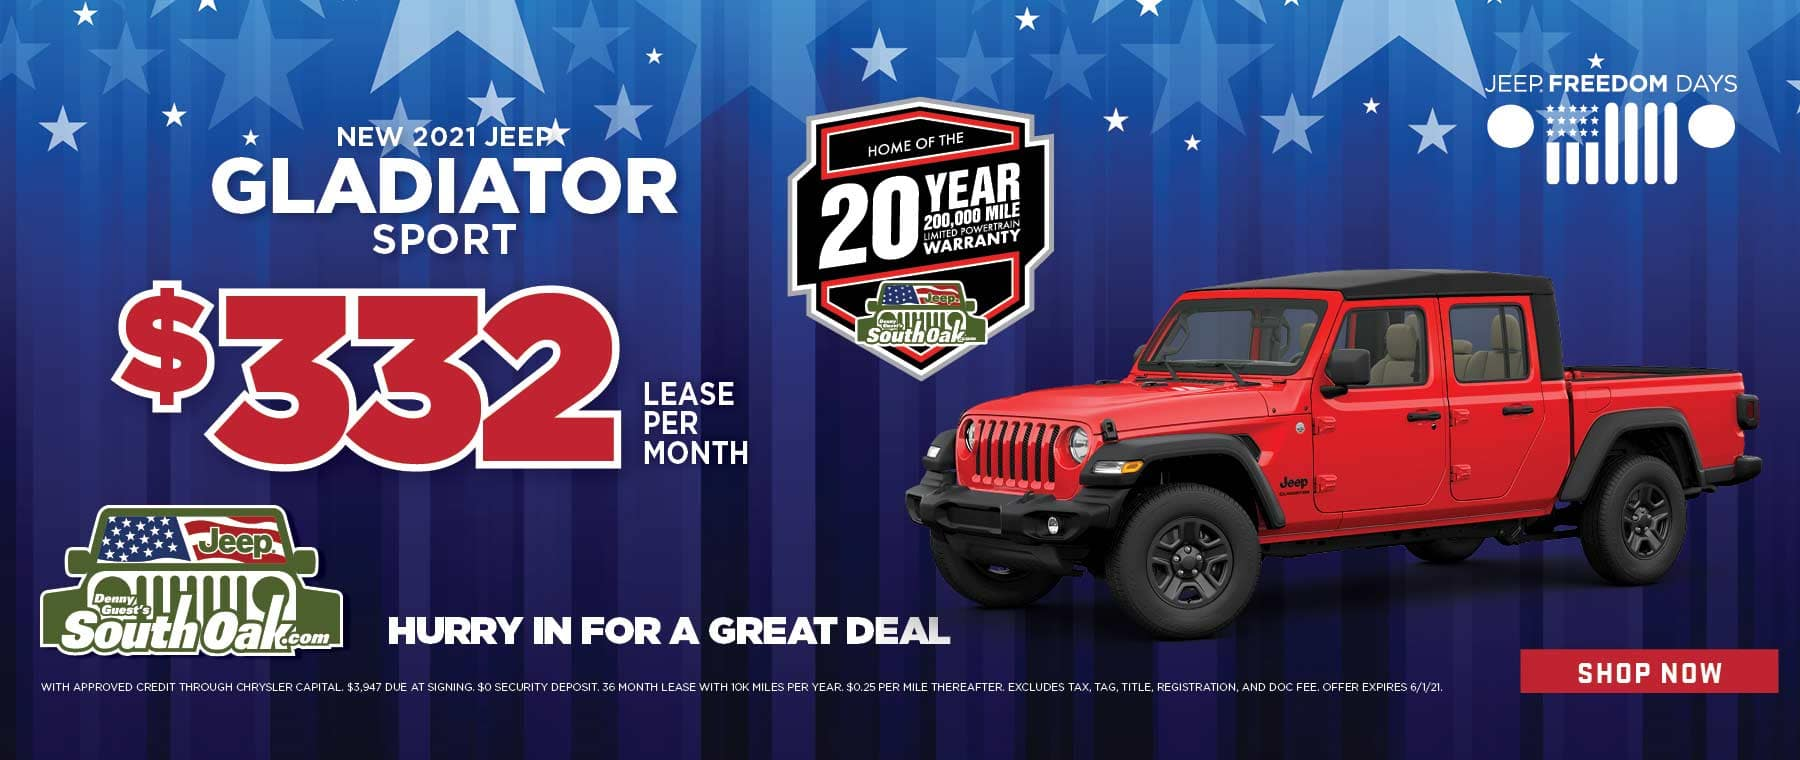 2021 Jeep Gladiator Sport Lease Deal